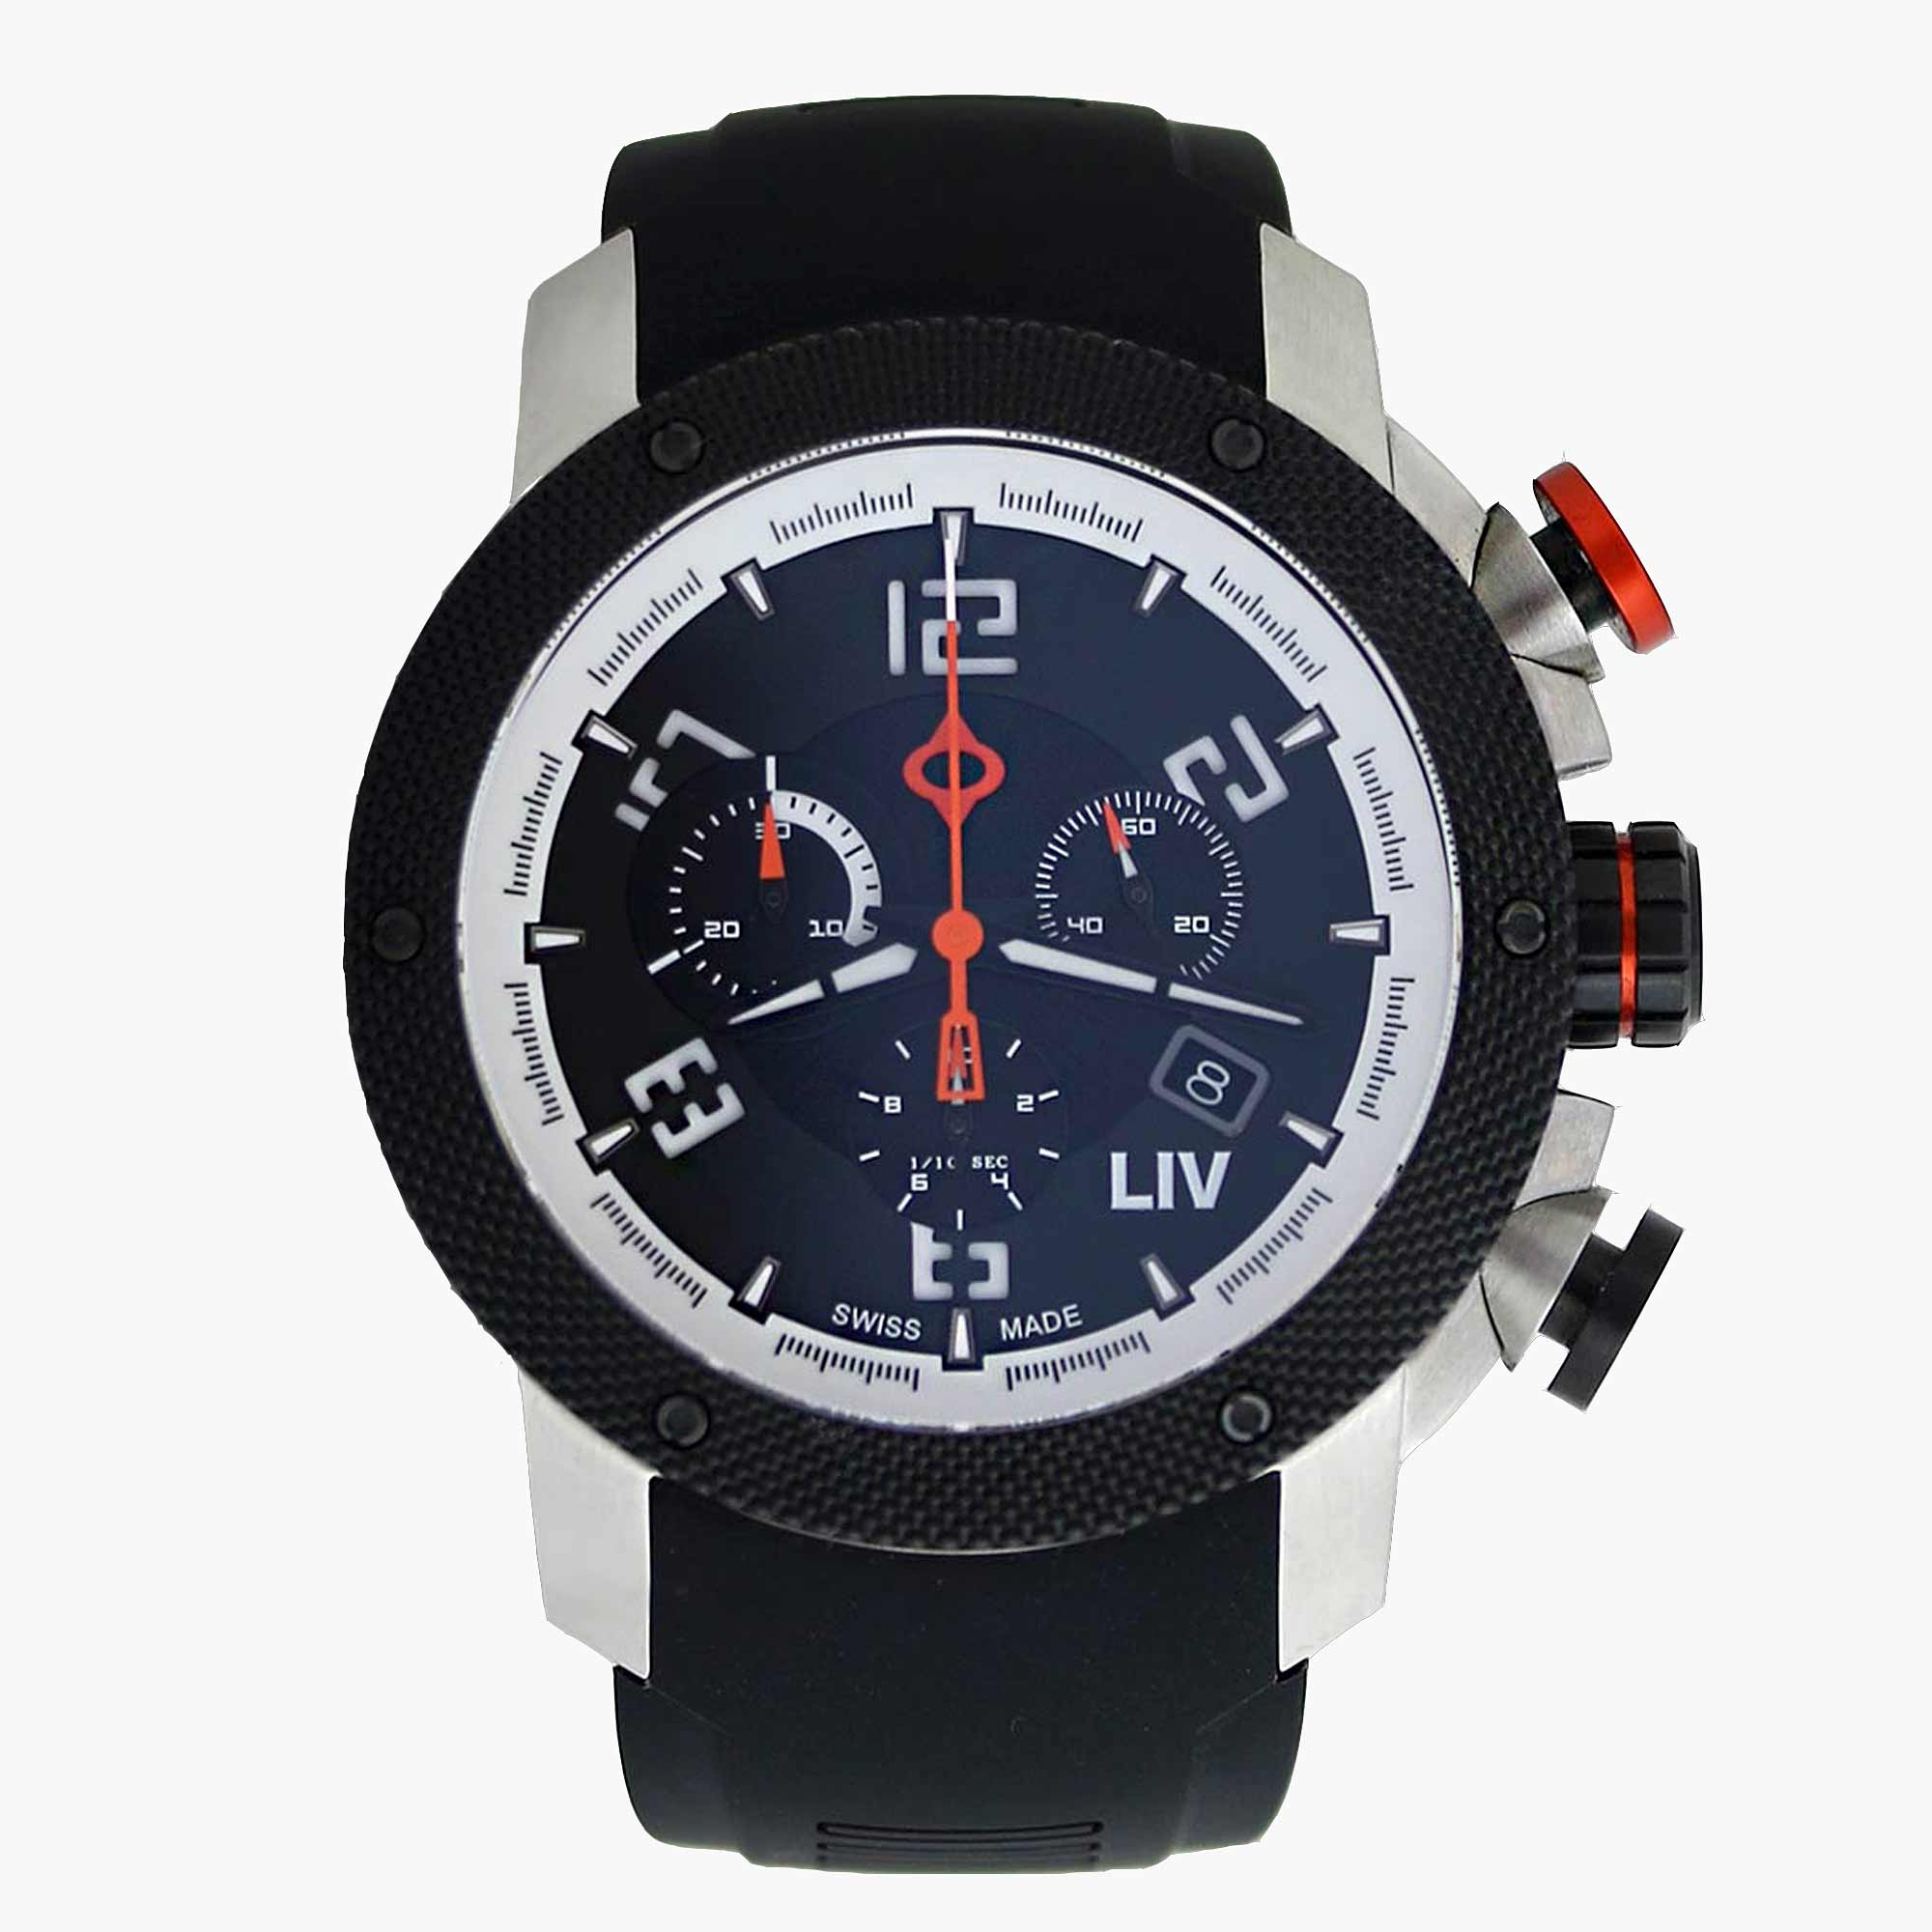 since like page brand or on a s i automatic another tissot seiko one looks case for me re design we although but lot swiss it watches which talking is the imho designs better